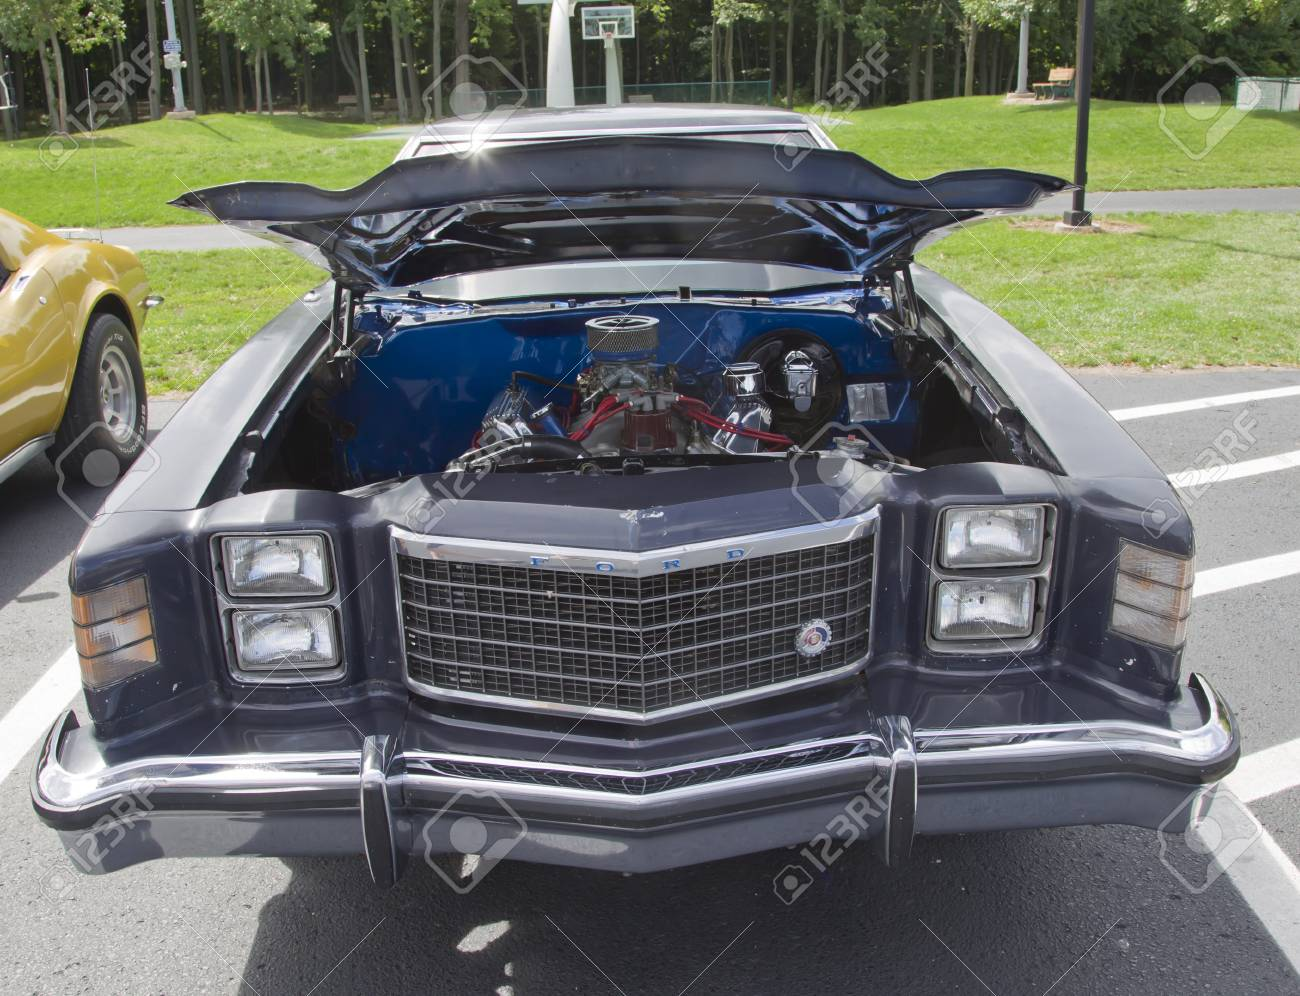 COMBINED LOCKS, WI - AUGUST 18: Front of a 1979 Ford Ranchero